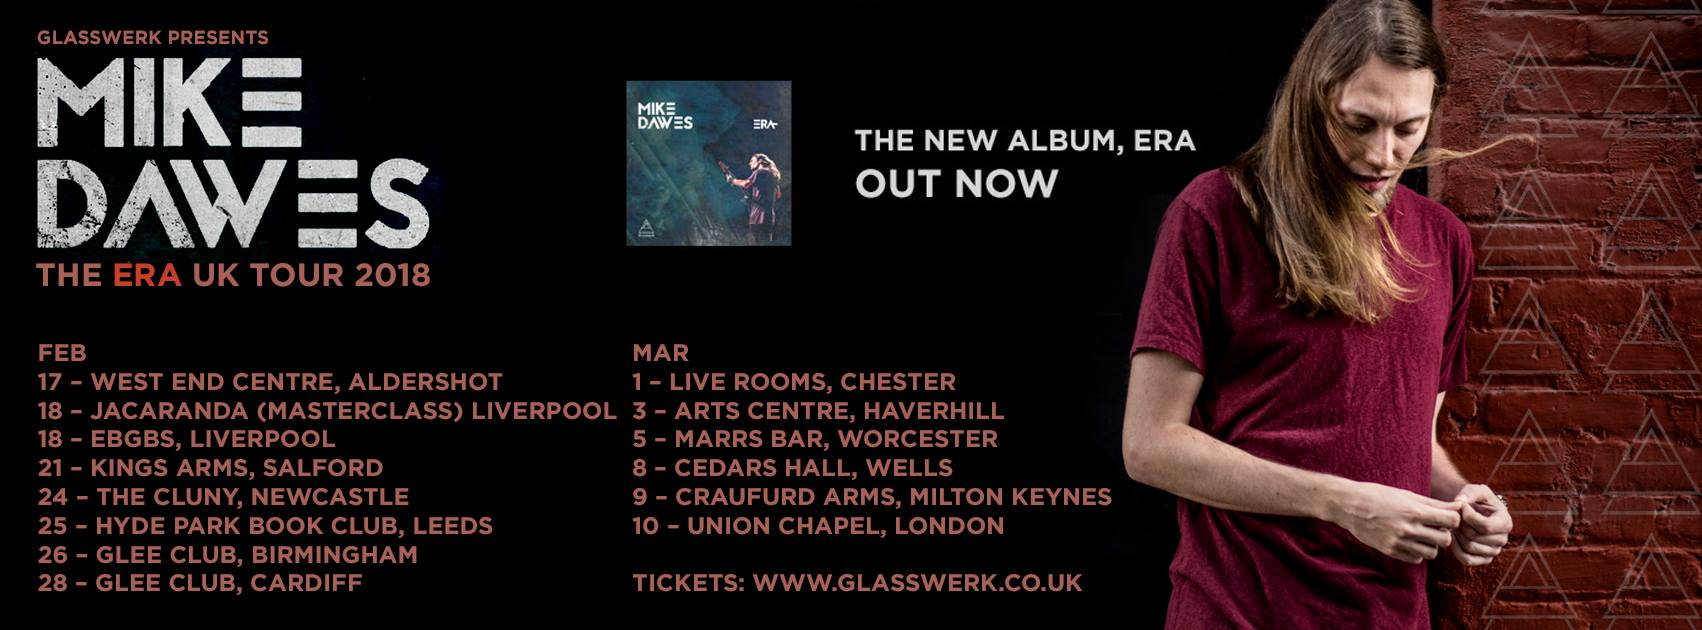 Mike Dawes U.K. Tour 2018